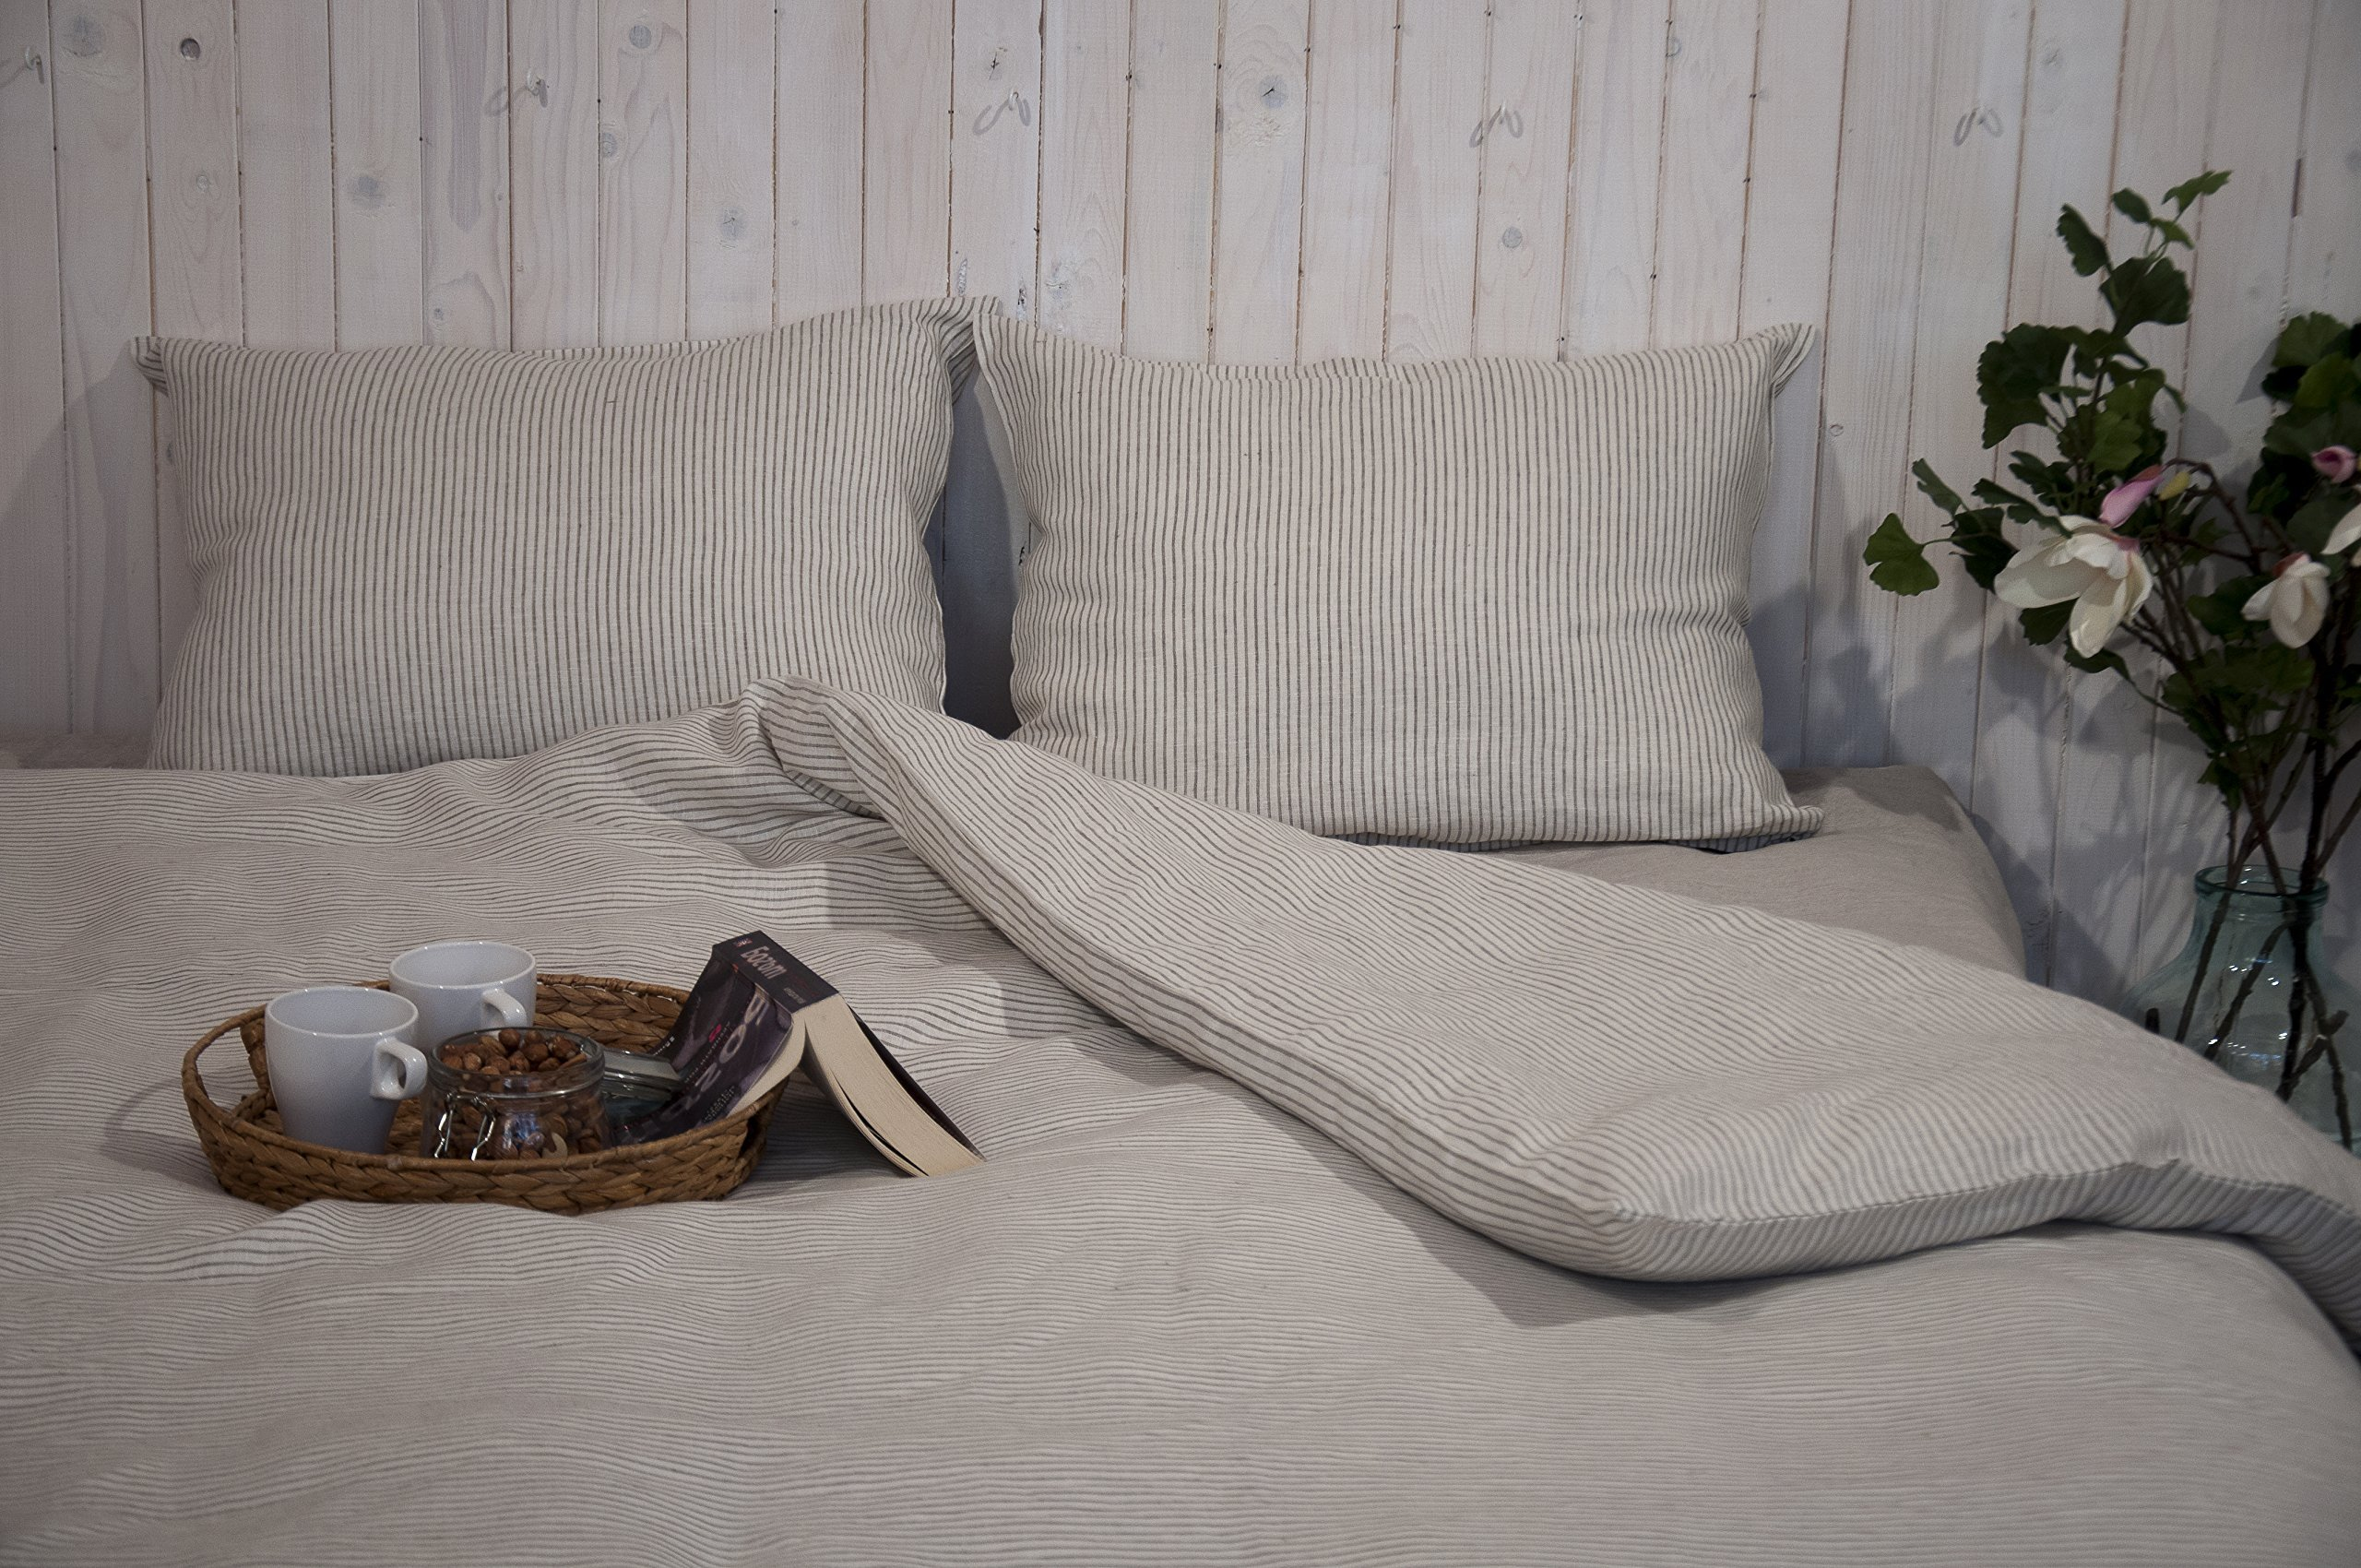 Duvet Cover / Natural, Non-toxic / Twin, Full, Double, Queen, King or Custom Size / Non-toxic Natural Bedding / Custom Sizes, Shapes, Fabrics Available by Home Of Wool